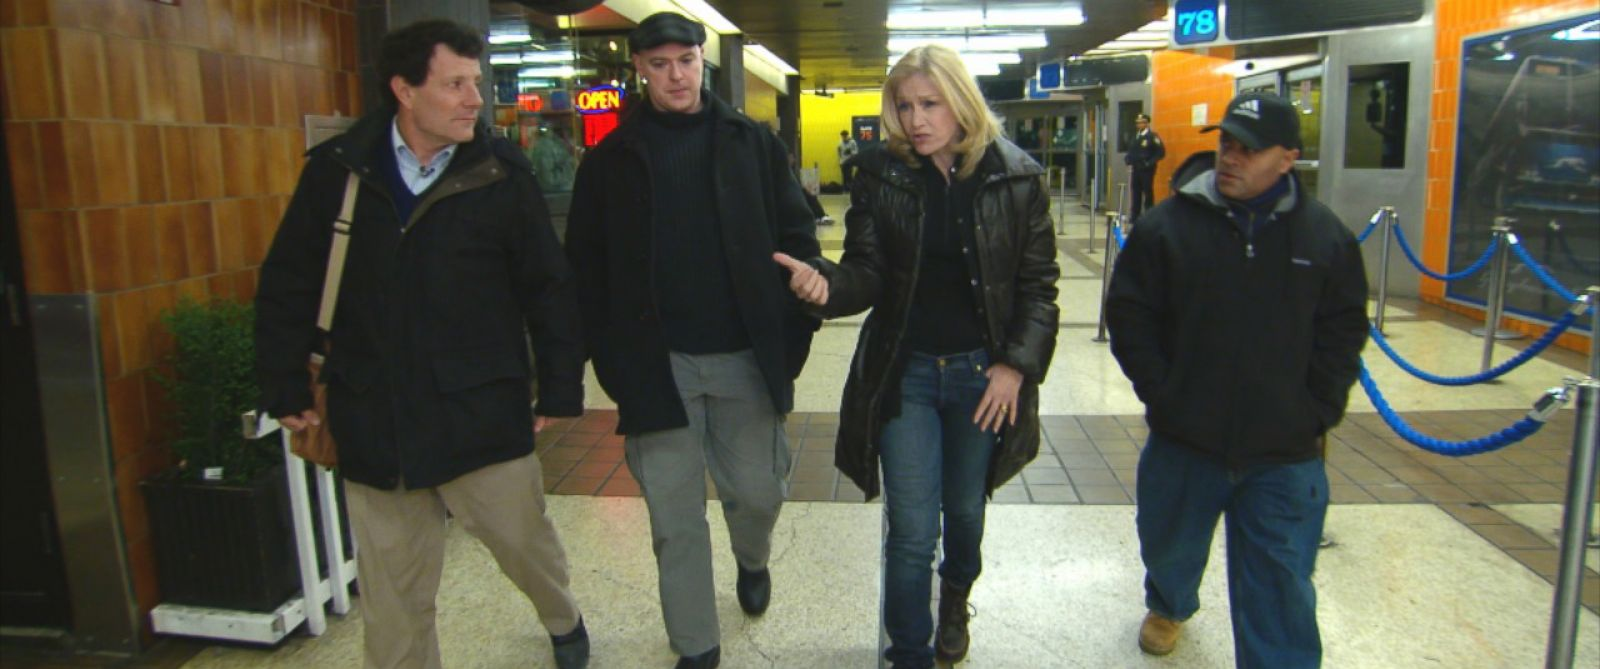 PHOTO: ABCs Diane Sawyer, center right, walks through a Port Authority bus terminal with New York Times journalist Nicholas Kristof, left, and Officer Jack Collins, center left, and Sgt. Hector Martinez, right.